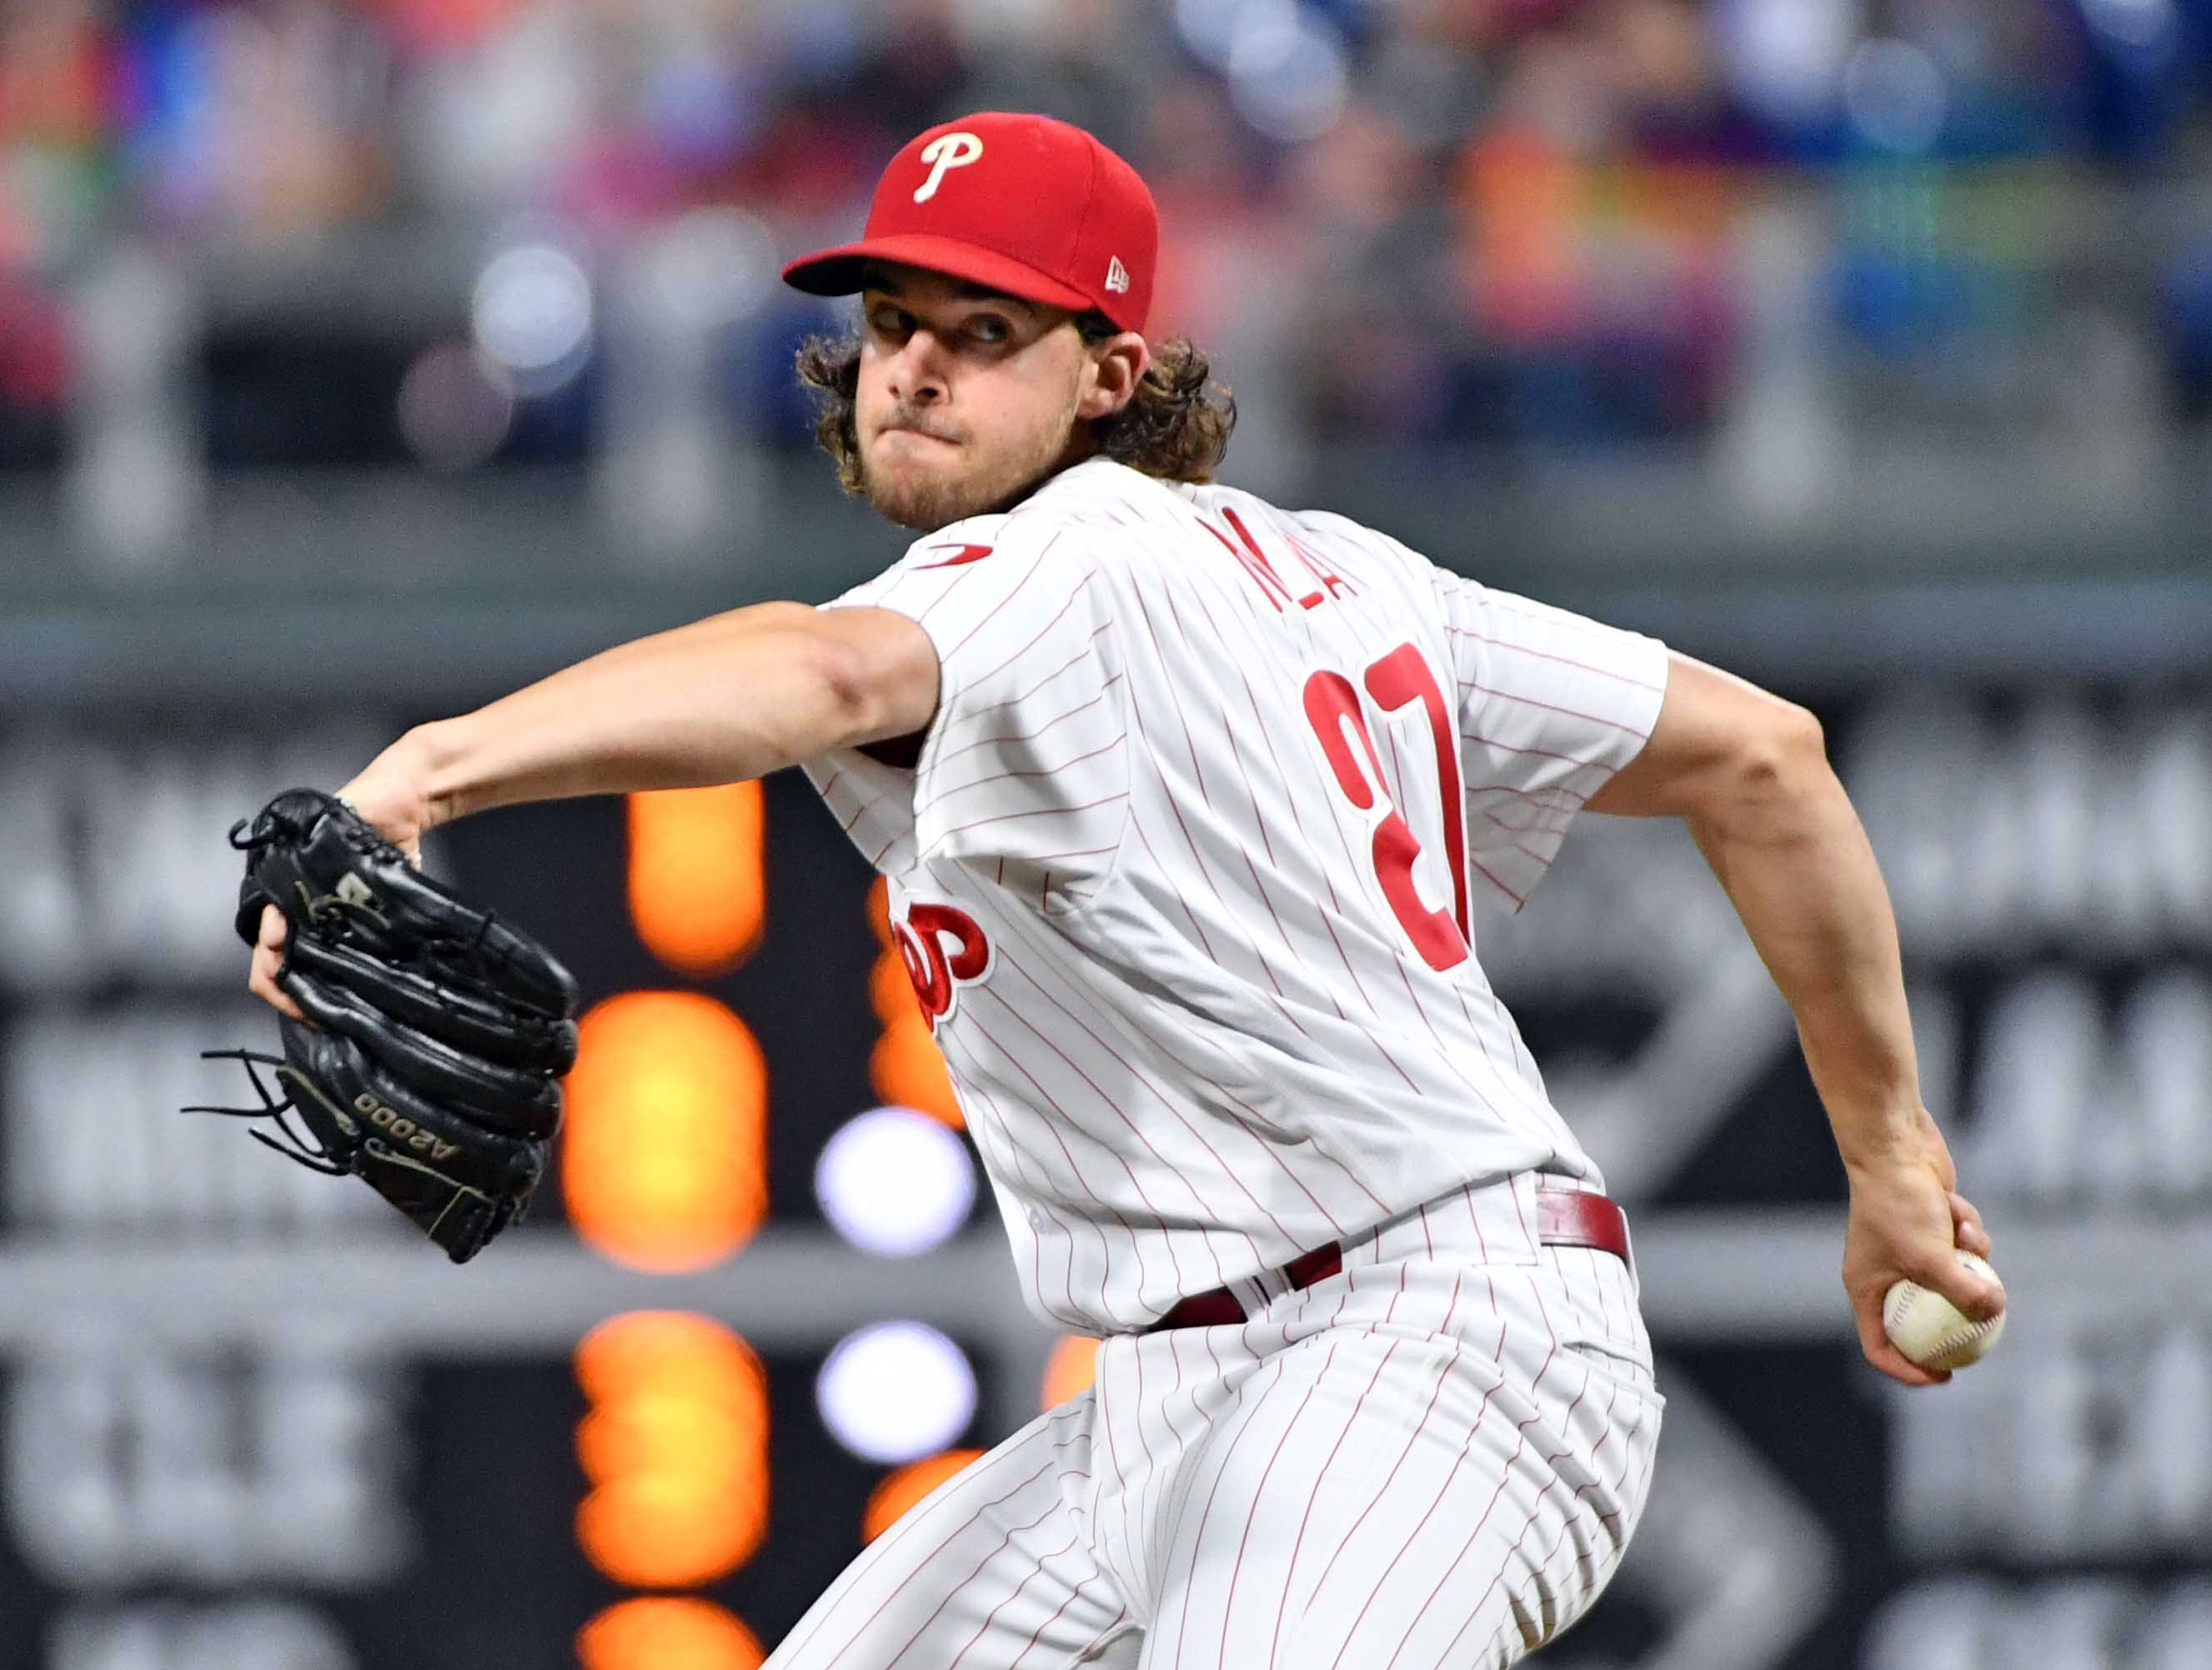 27. Aaron Nola, Philadelphia Phillies starting pitcher.